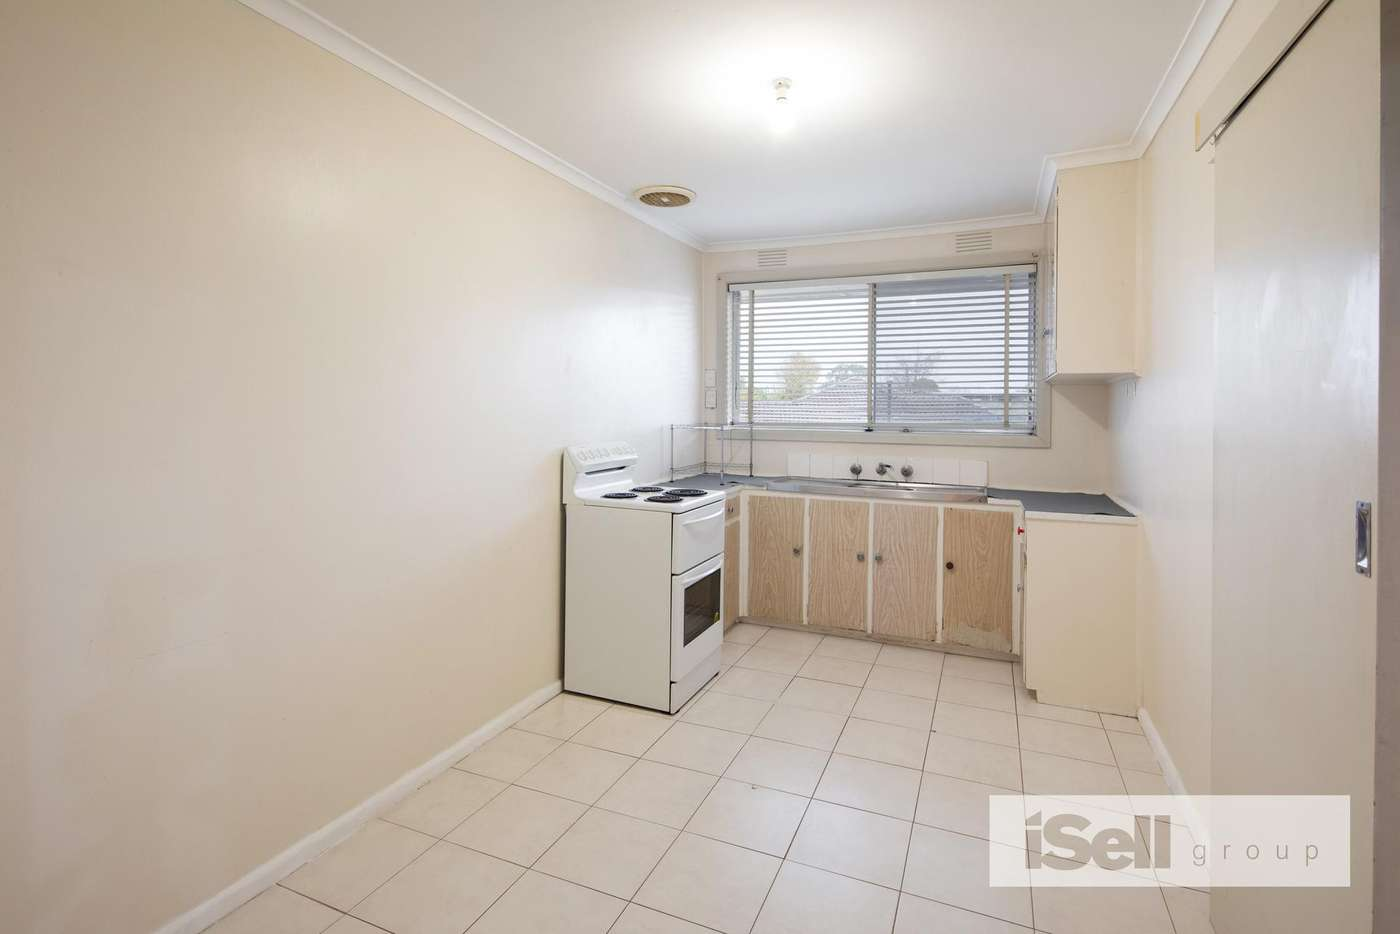 Sixth view of Homely unit listing, 3/423 Springvale Road, Springvale VIC 3171